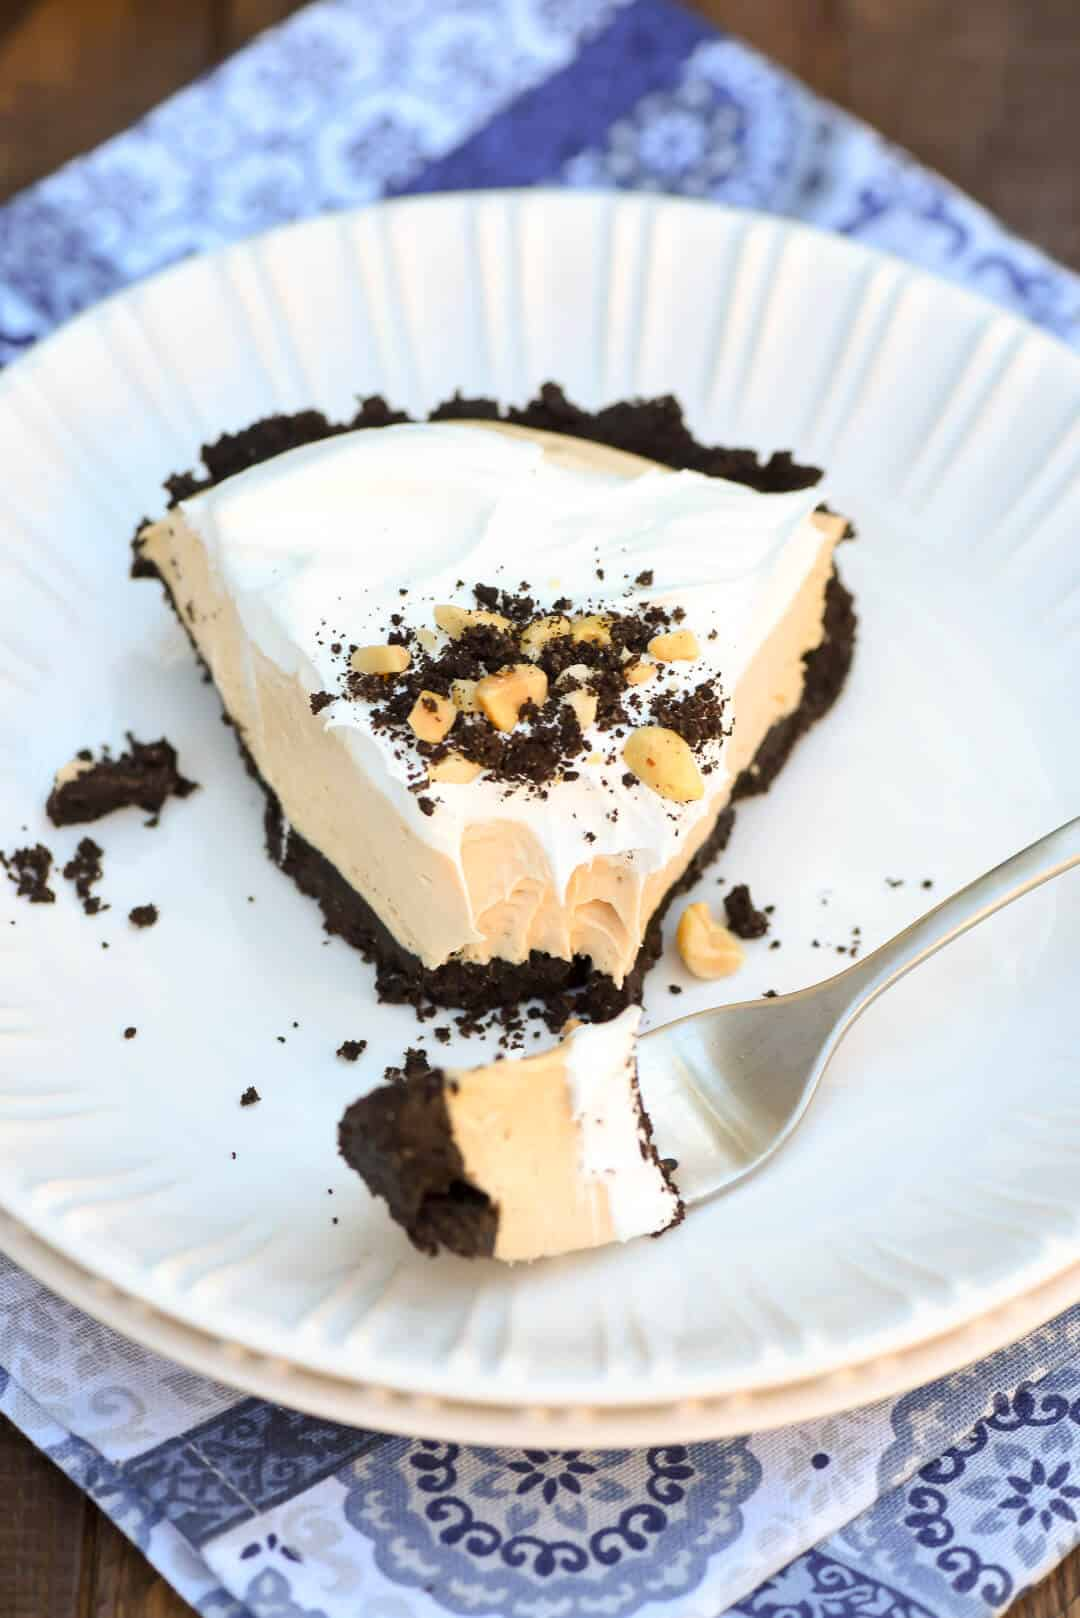 This rich and creamy summer classic is a great dessert choice for your next summer gathering. Frozen Peanut Butter Pie is a slice of heaven on a warm summer evening.